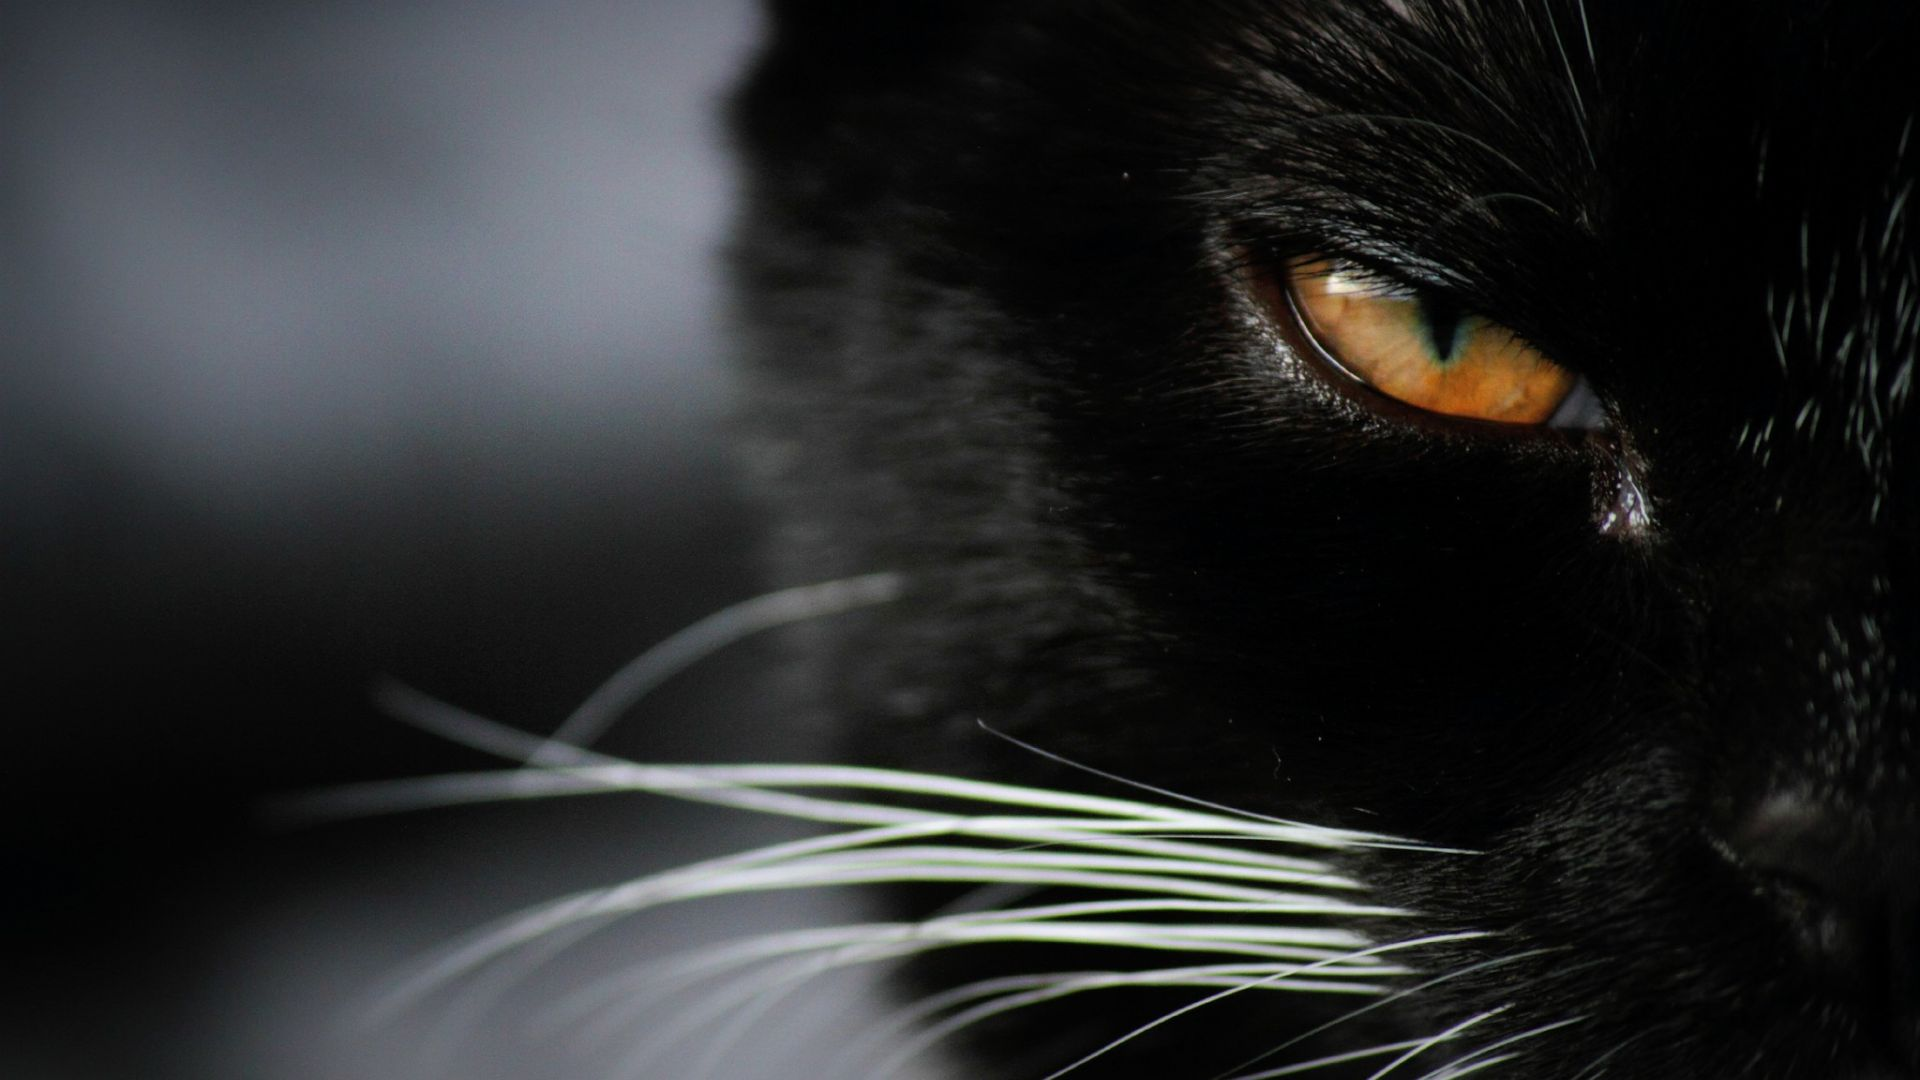 Hd Fantasy Girl Wallpapers 1080p Desktop Wallpaper Angry Black Cat Eye Close Up Hd Image